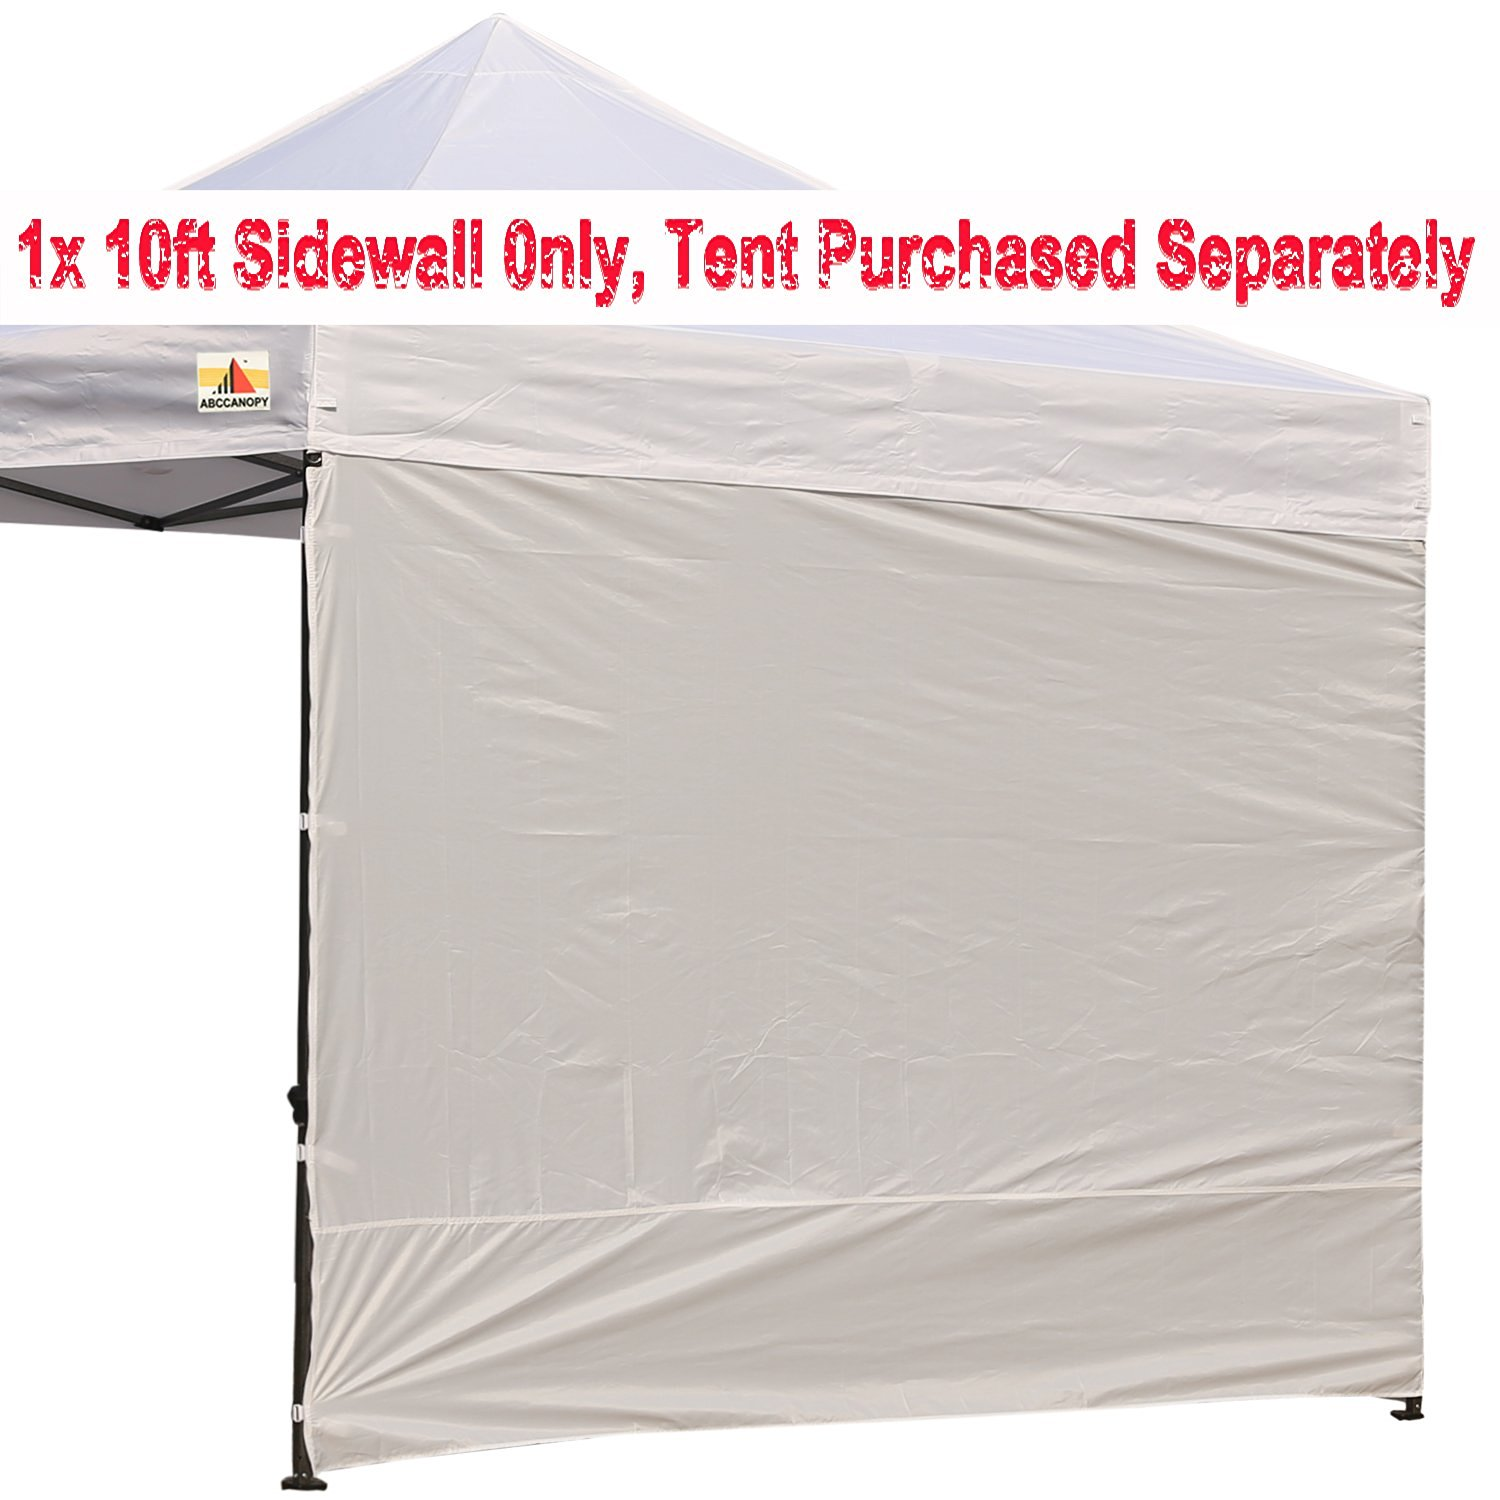 Buy Abccanopy Tent Sidewalls Canopy Sunwall For Ez 10u0026#39; x 10u0026#39; Instant Pop Up Canopy Tent Gazebo - Gazebo Not IncludedWhite in Cheap Price on ...  sc 1 st  Alibaba : canopy tent with sidewalls - afamca.org